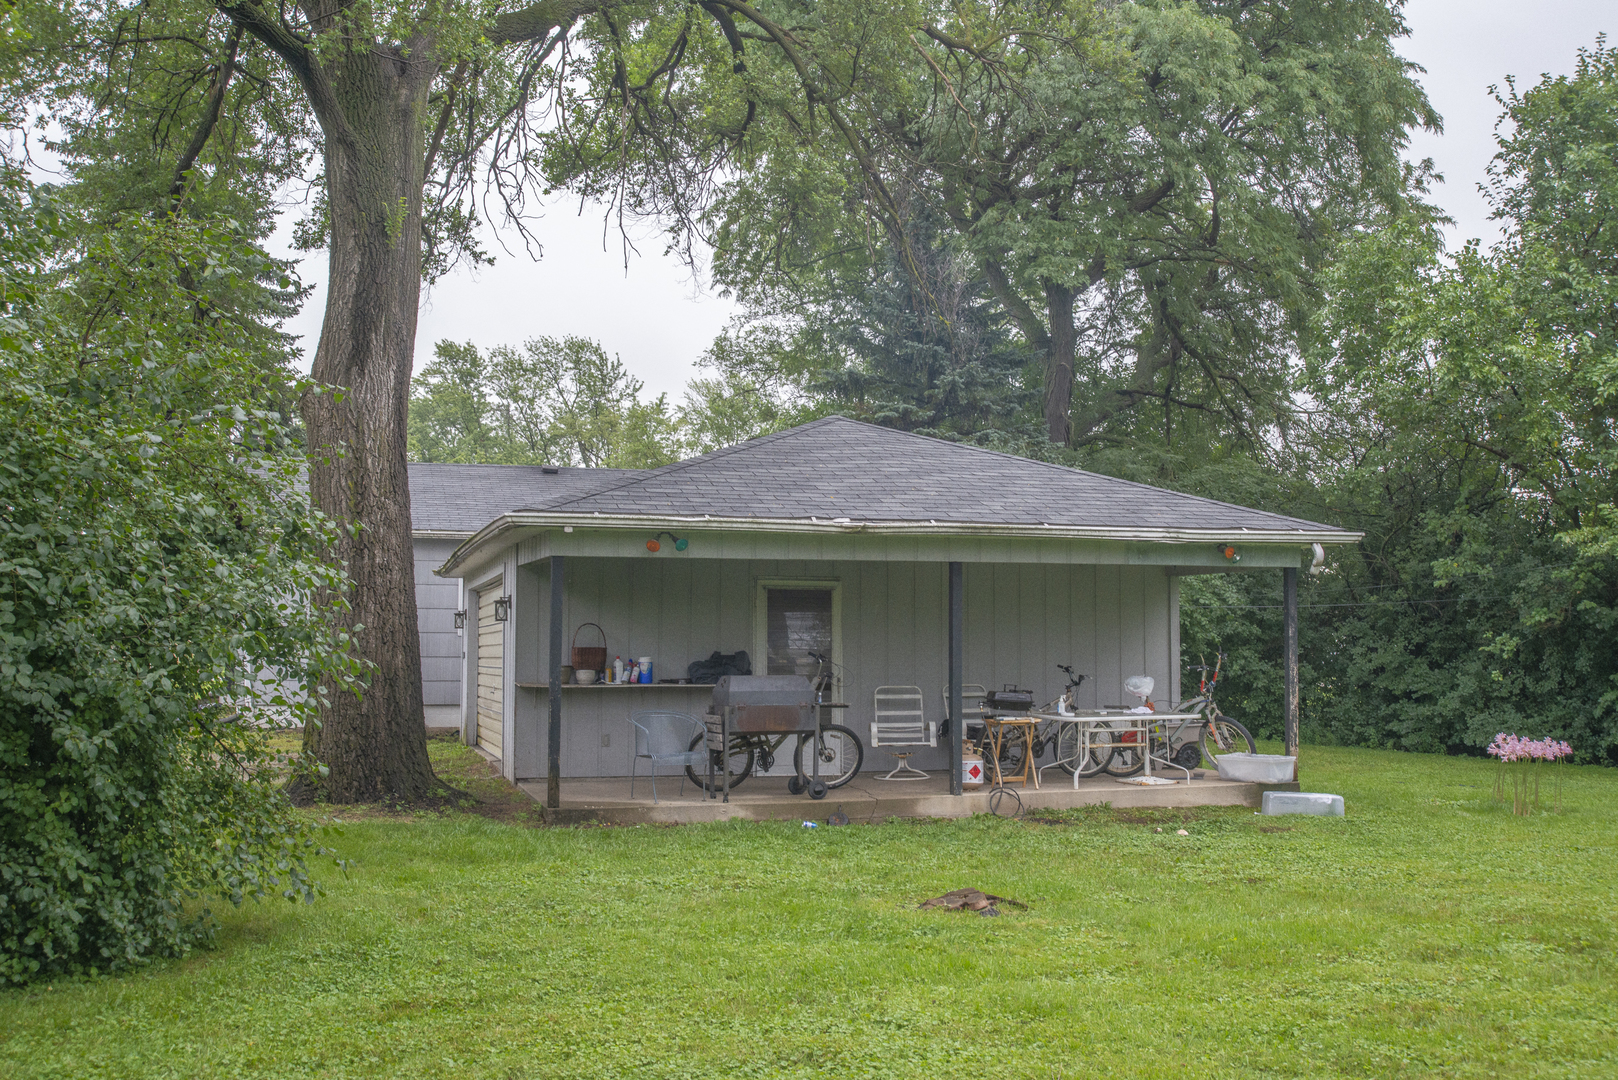 5700 South Brainard, LA GRANGE HIGHLANDS, Illinois, 60525